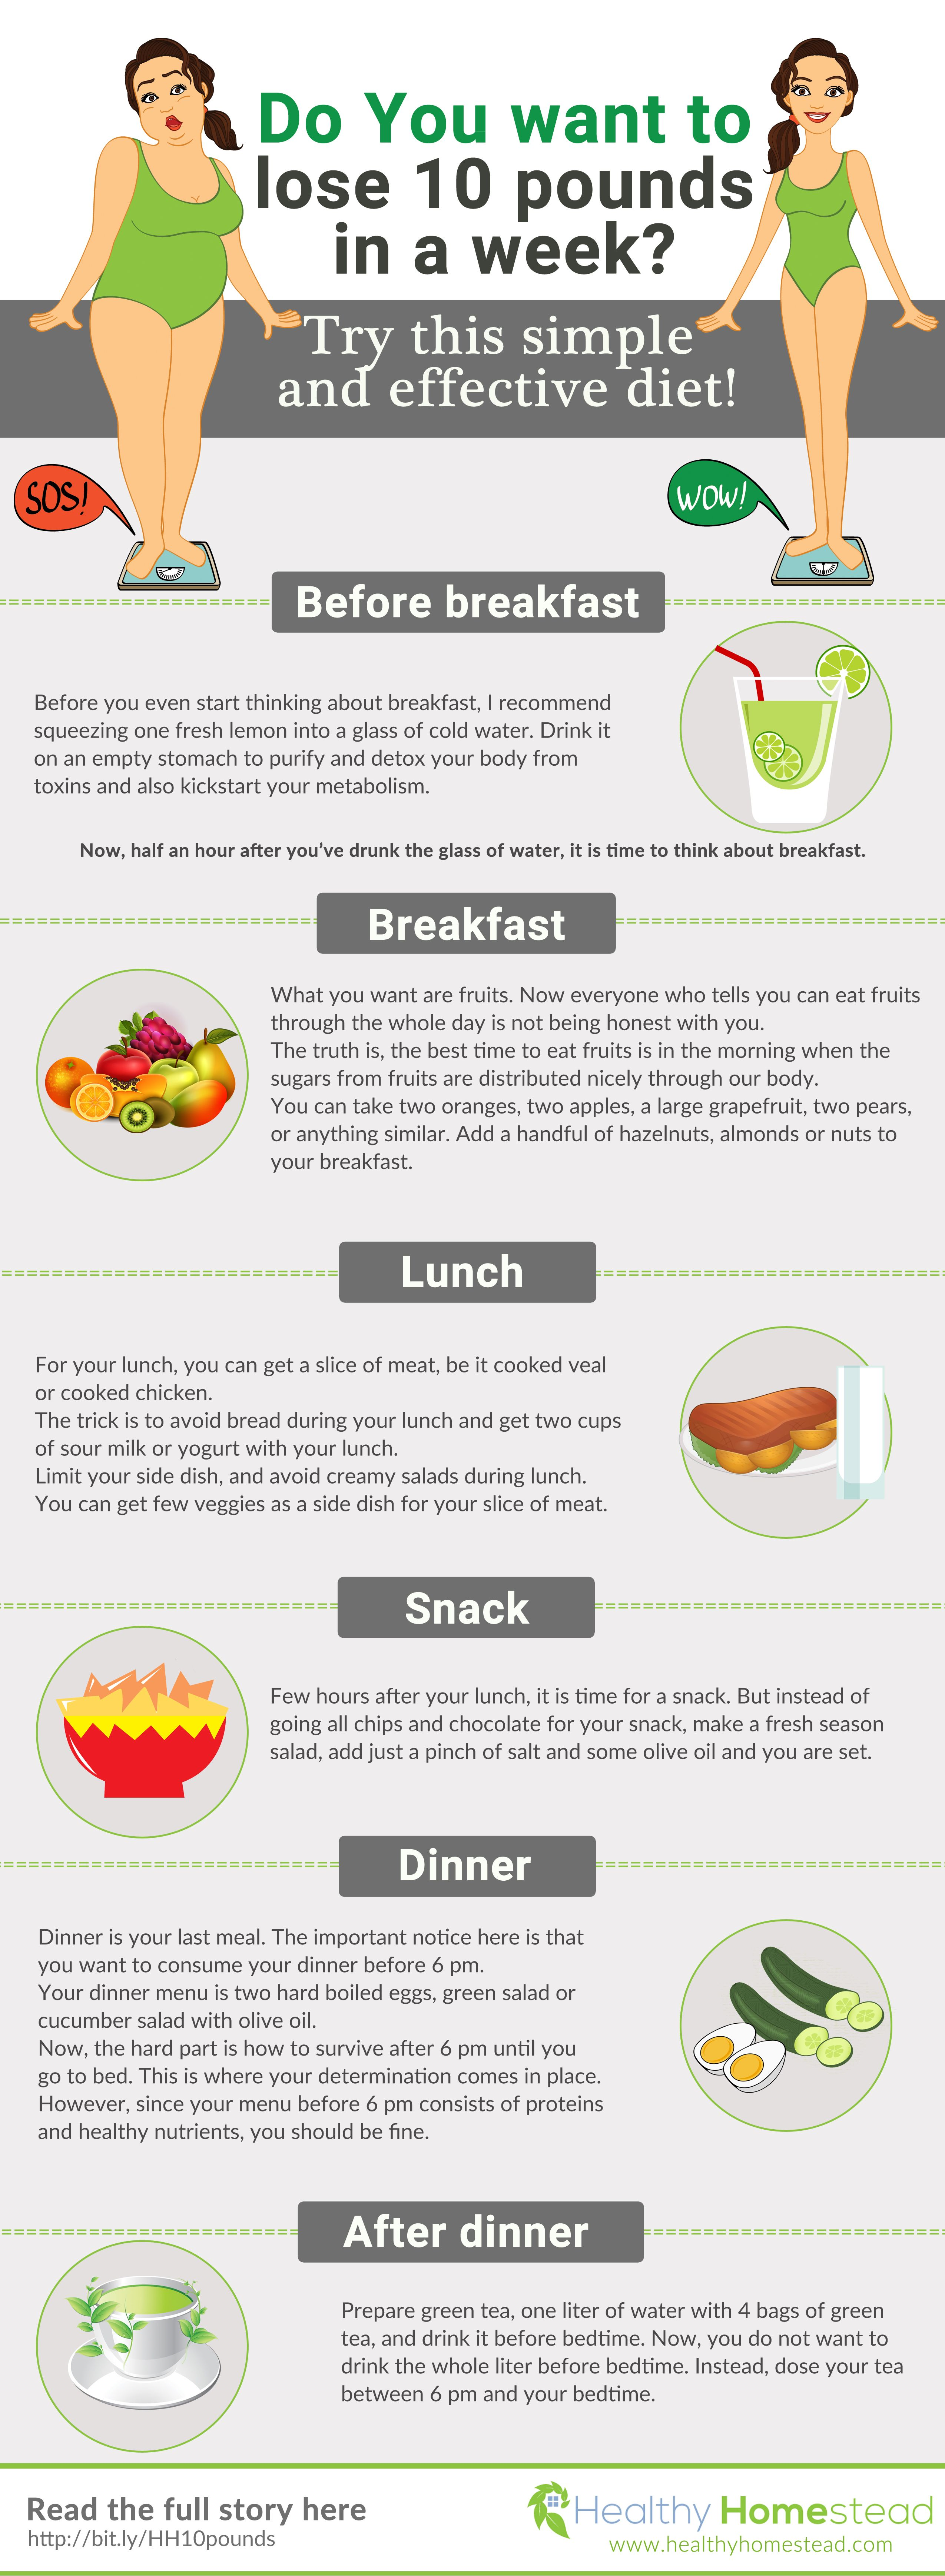 How to Lose 1 Pound Per Day (3 Best Fat Loss Diets That Work!